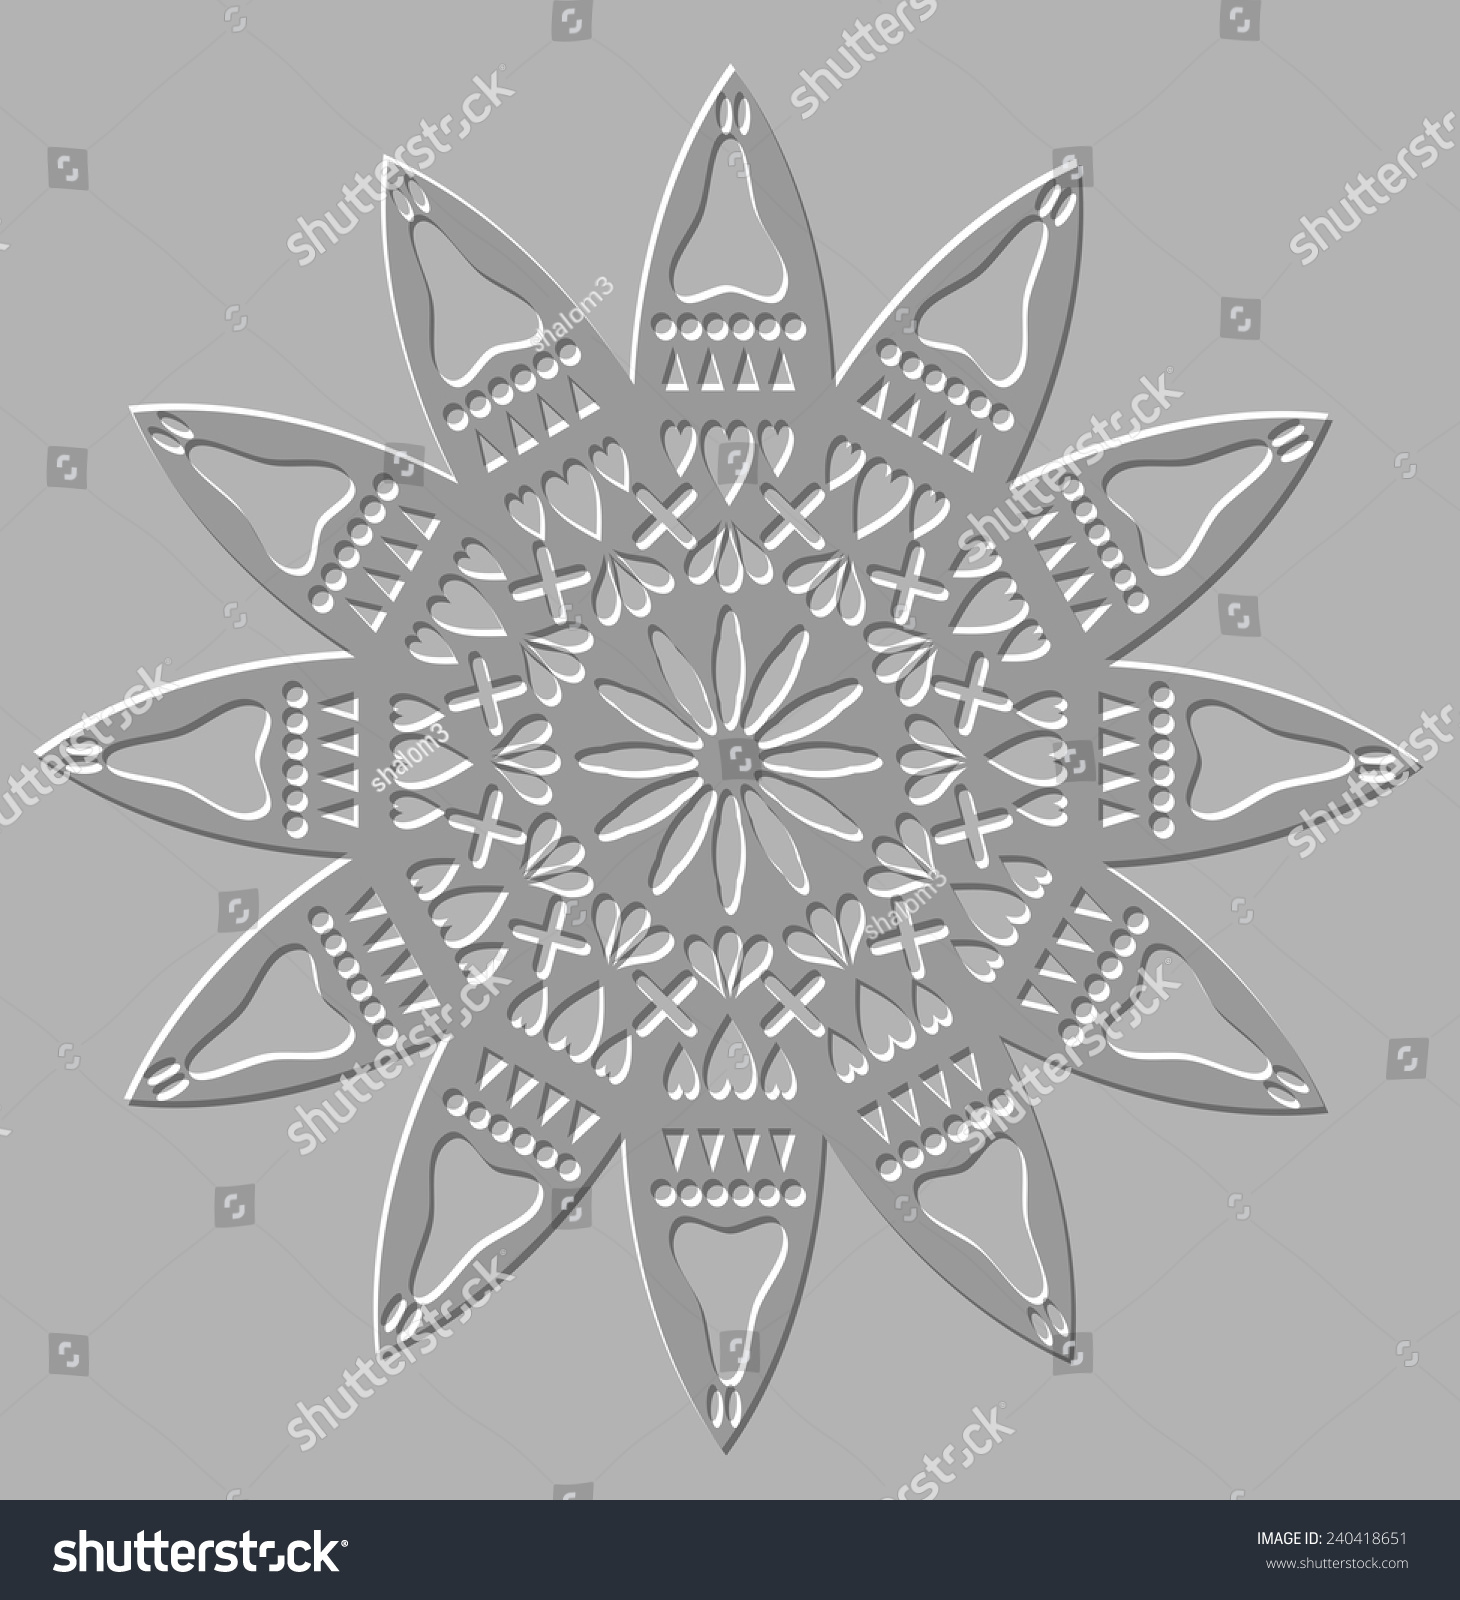 Motif Relief Silver Relief Geometric Symmetric Circle Decorative Stock Vector